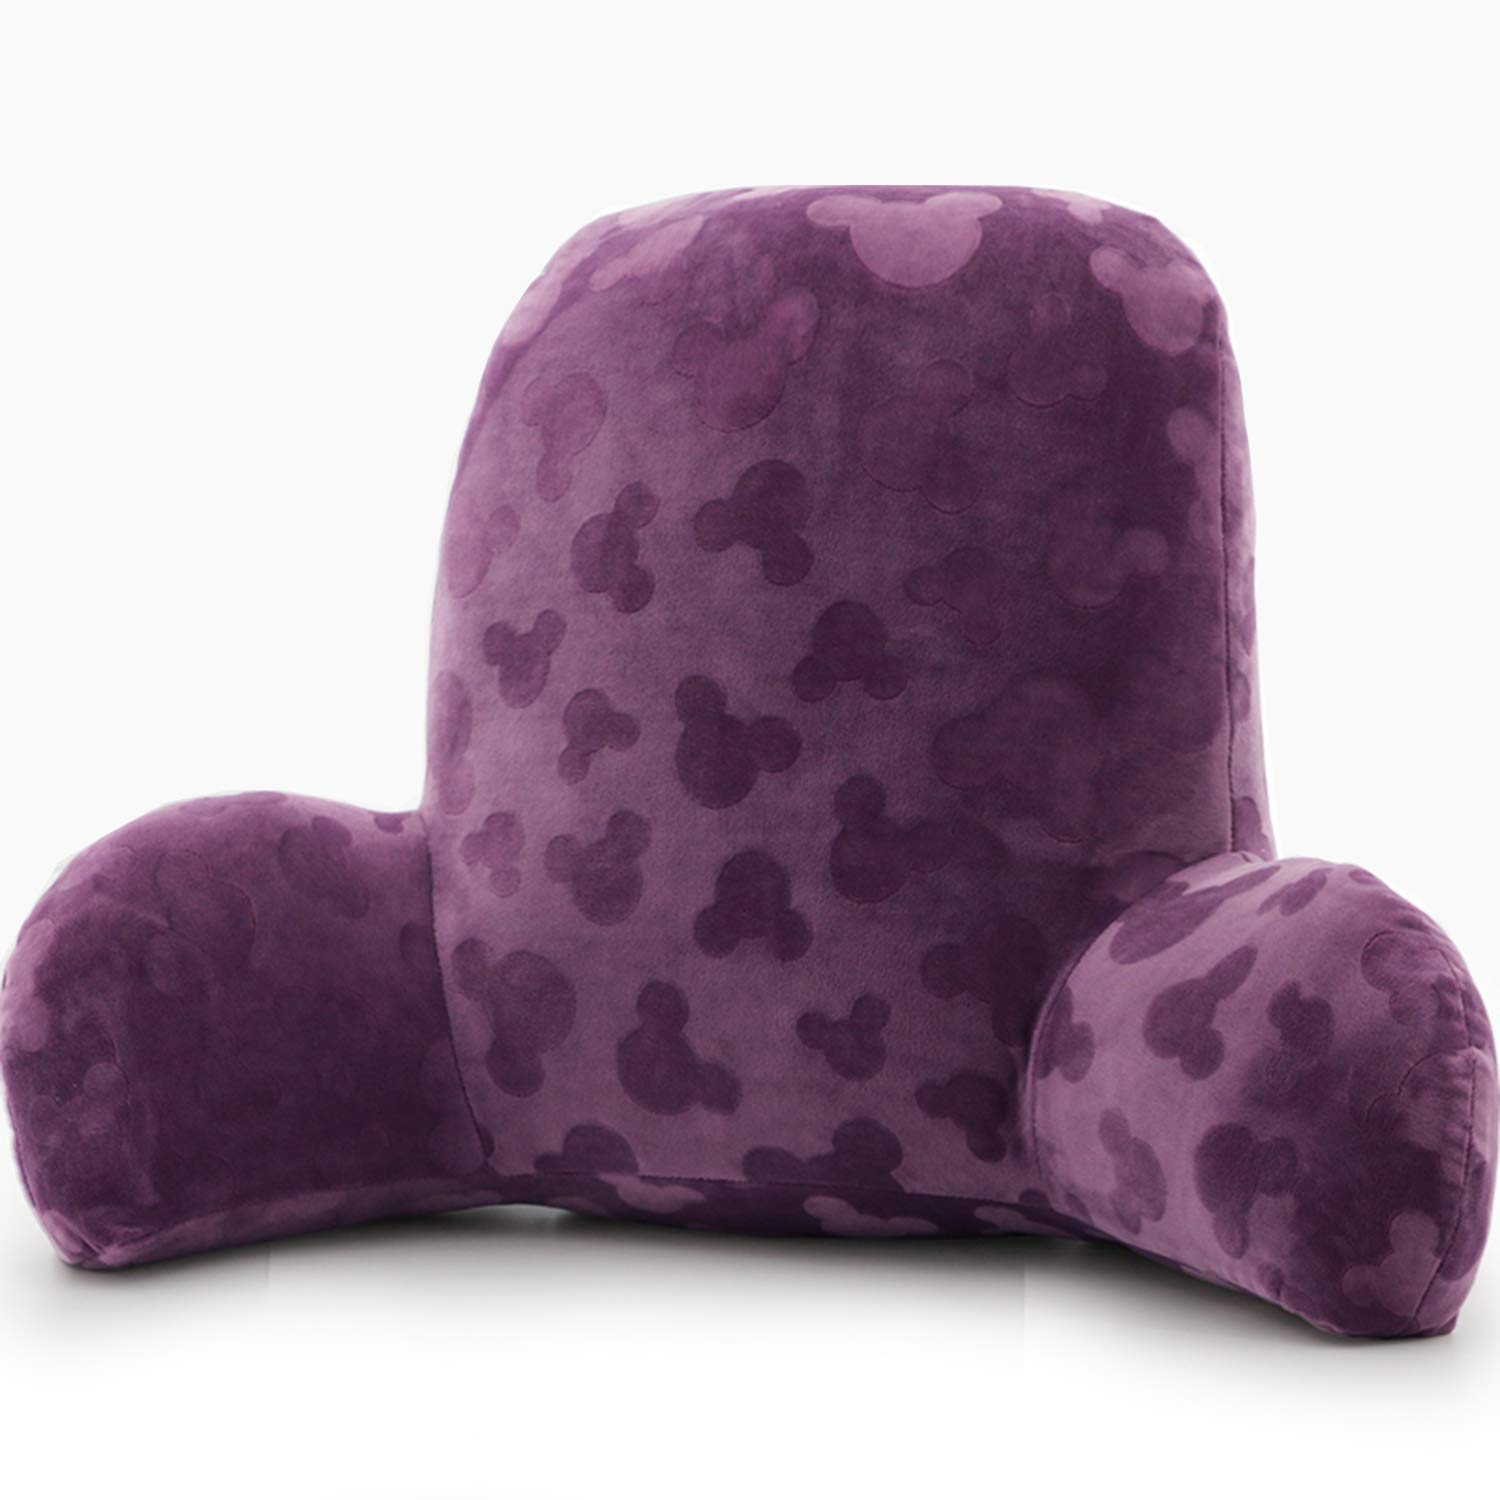 Qianhe Embossed Plush Reading Pillow - Best Bed Pillow with Arm Reading Bed - Perfect for Teens, and Kids (Violet)